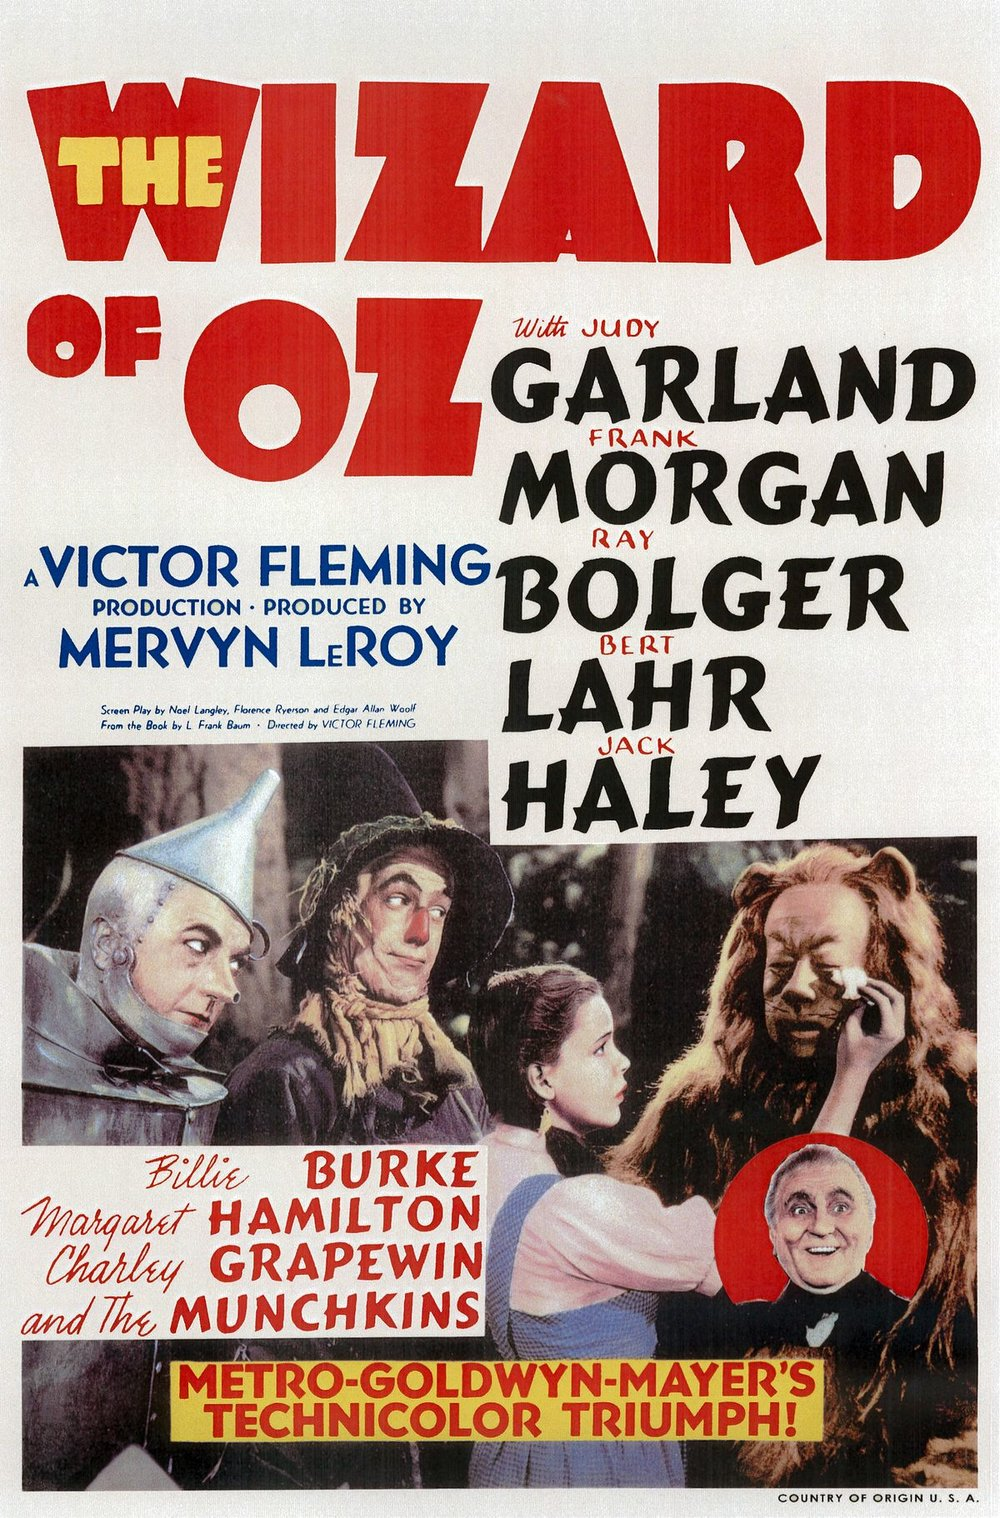 WIZARD_OF_OZ_ORIGINAL_POSTER_1939.jpg